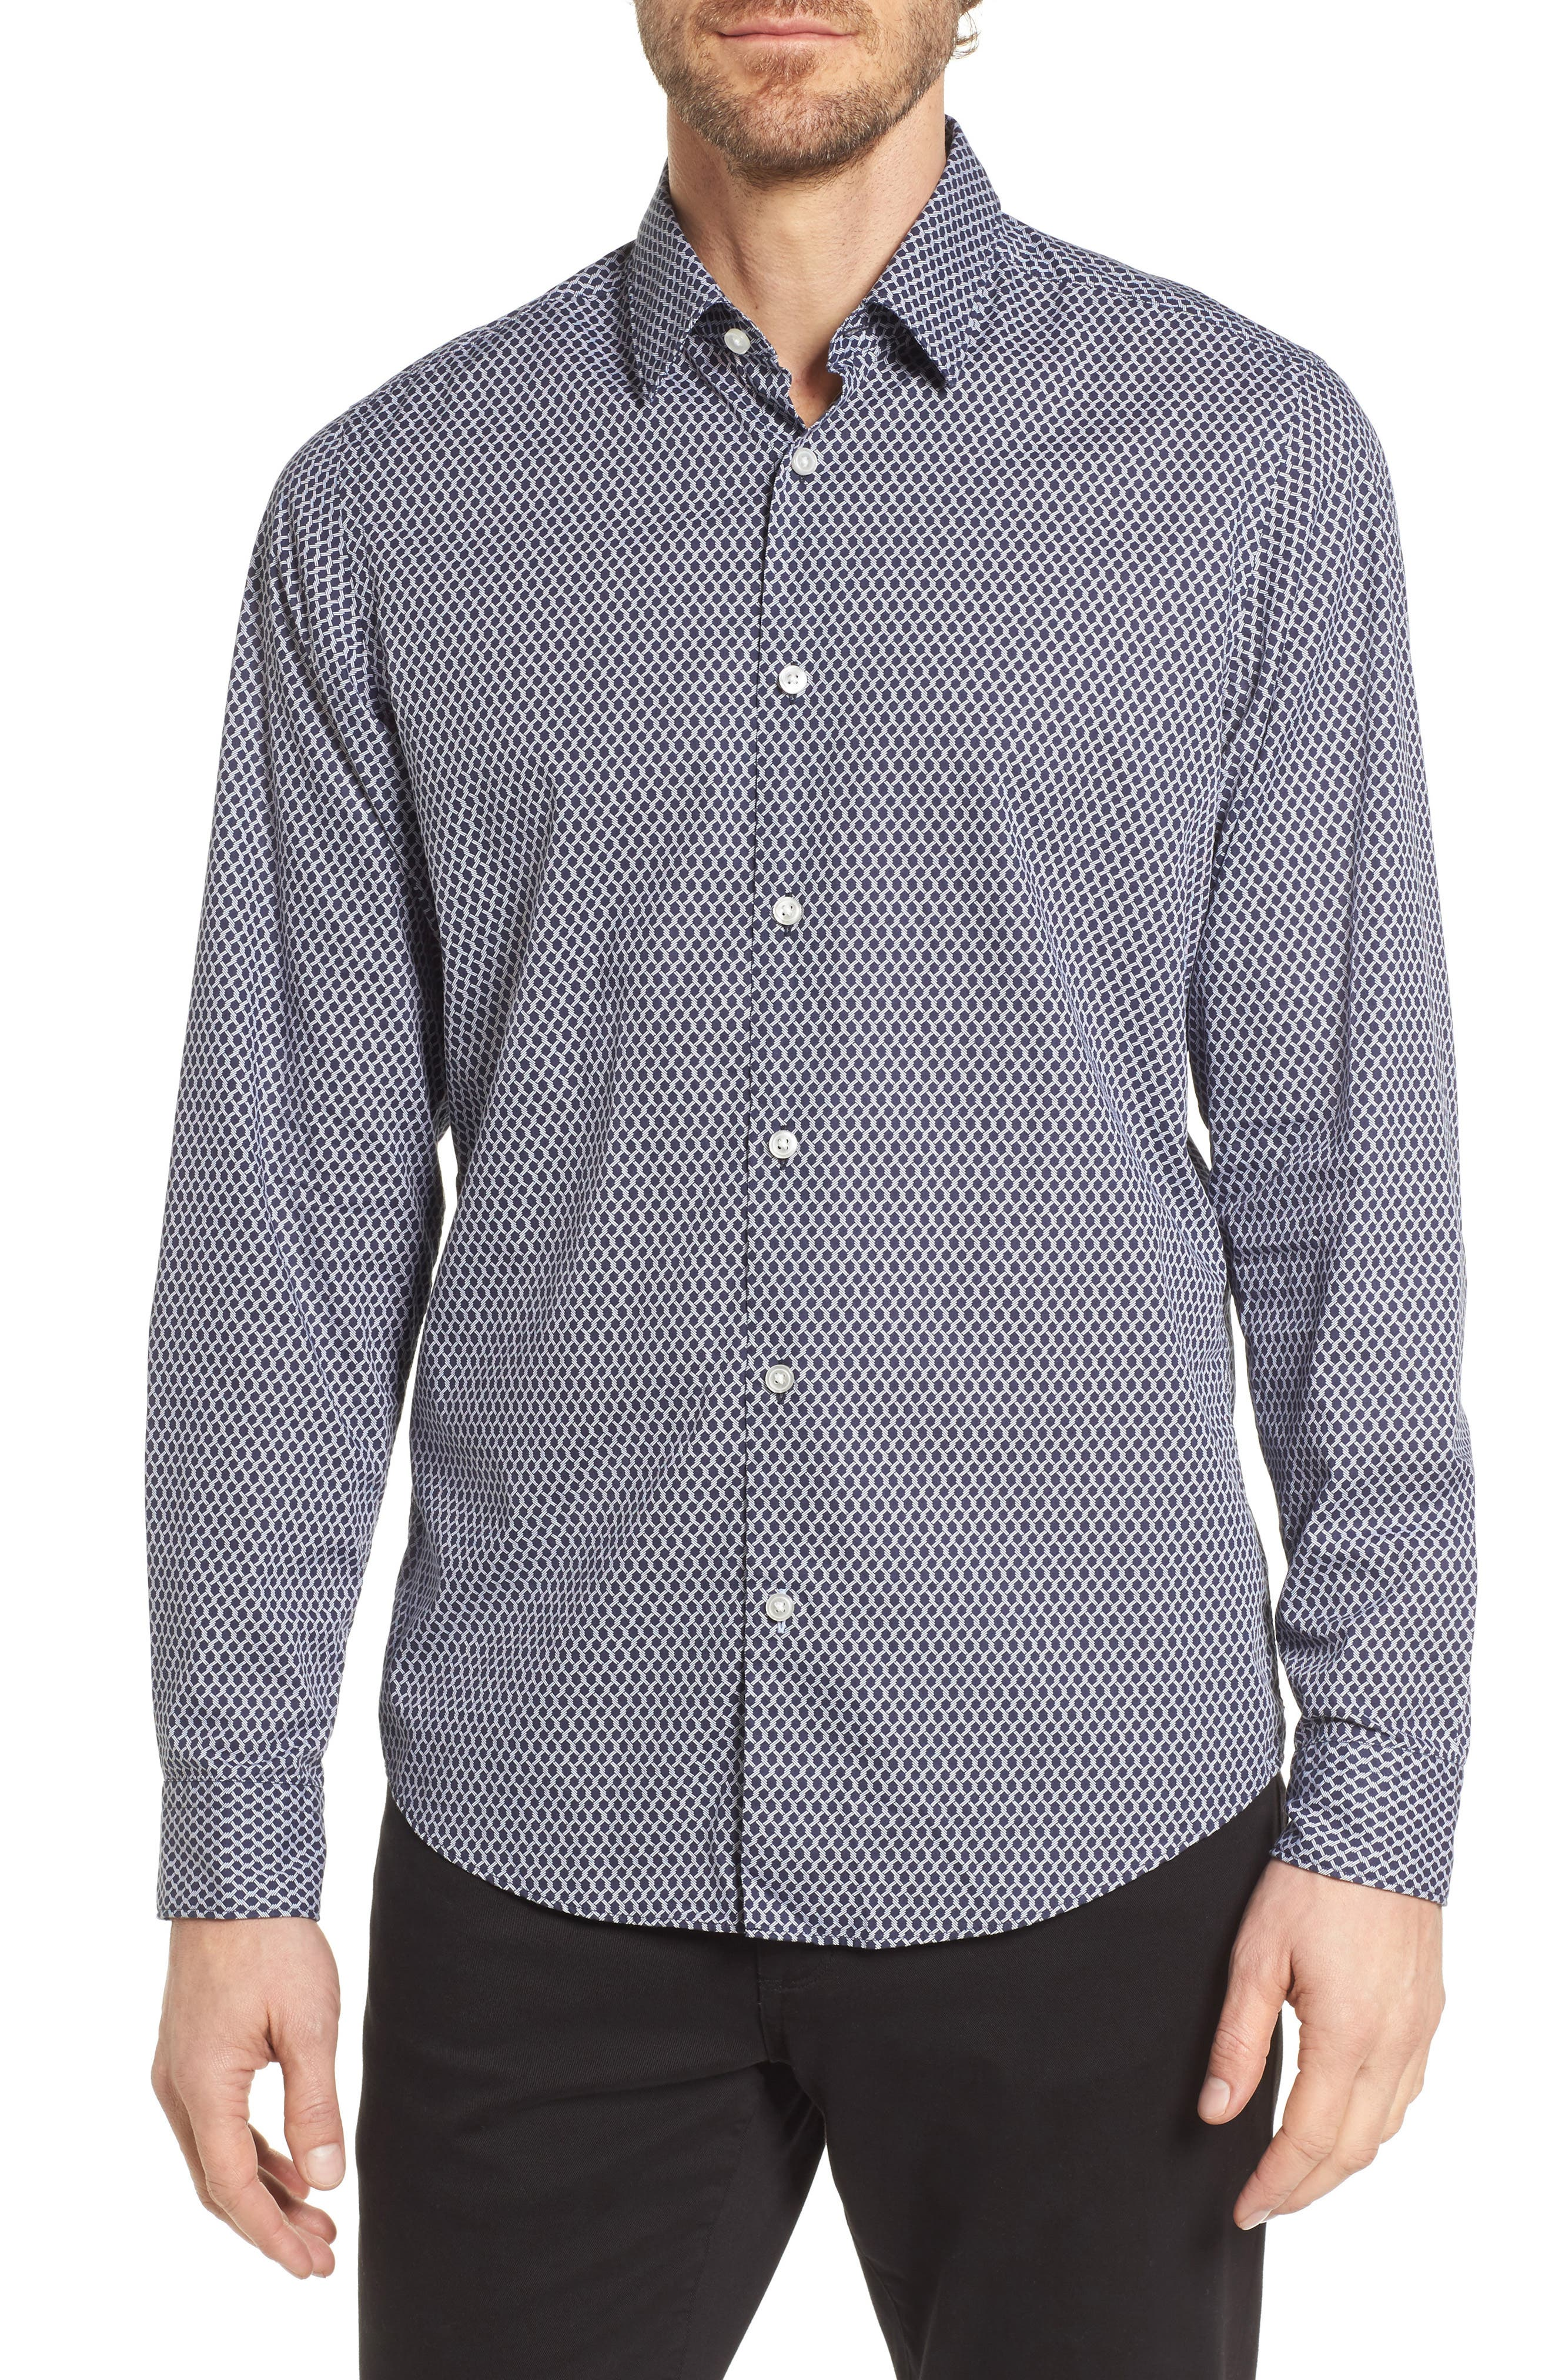 Lukas Regular Fit Print Sport Shirt,                         Main,                         color, Blue